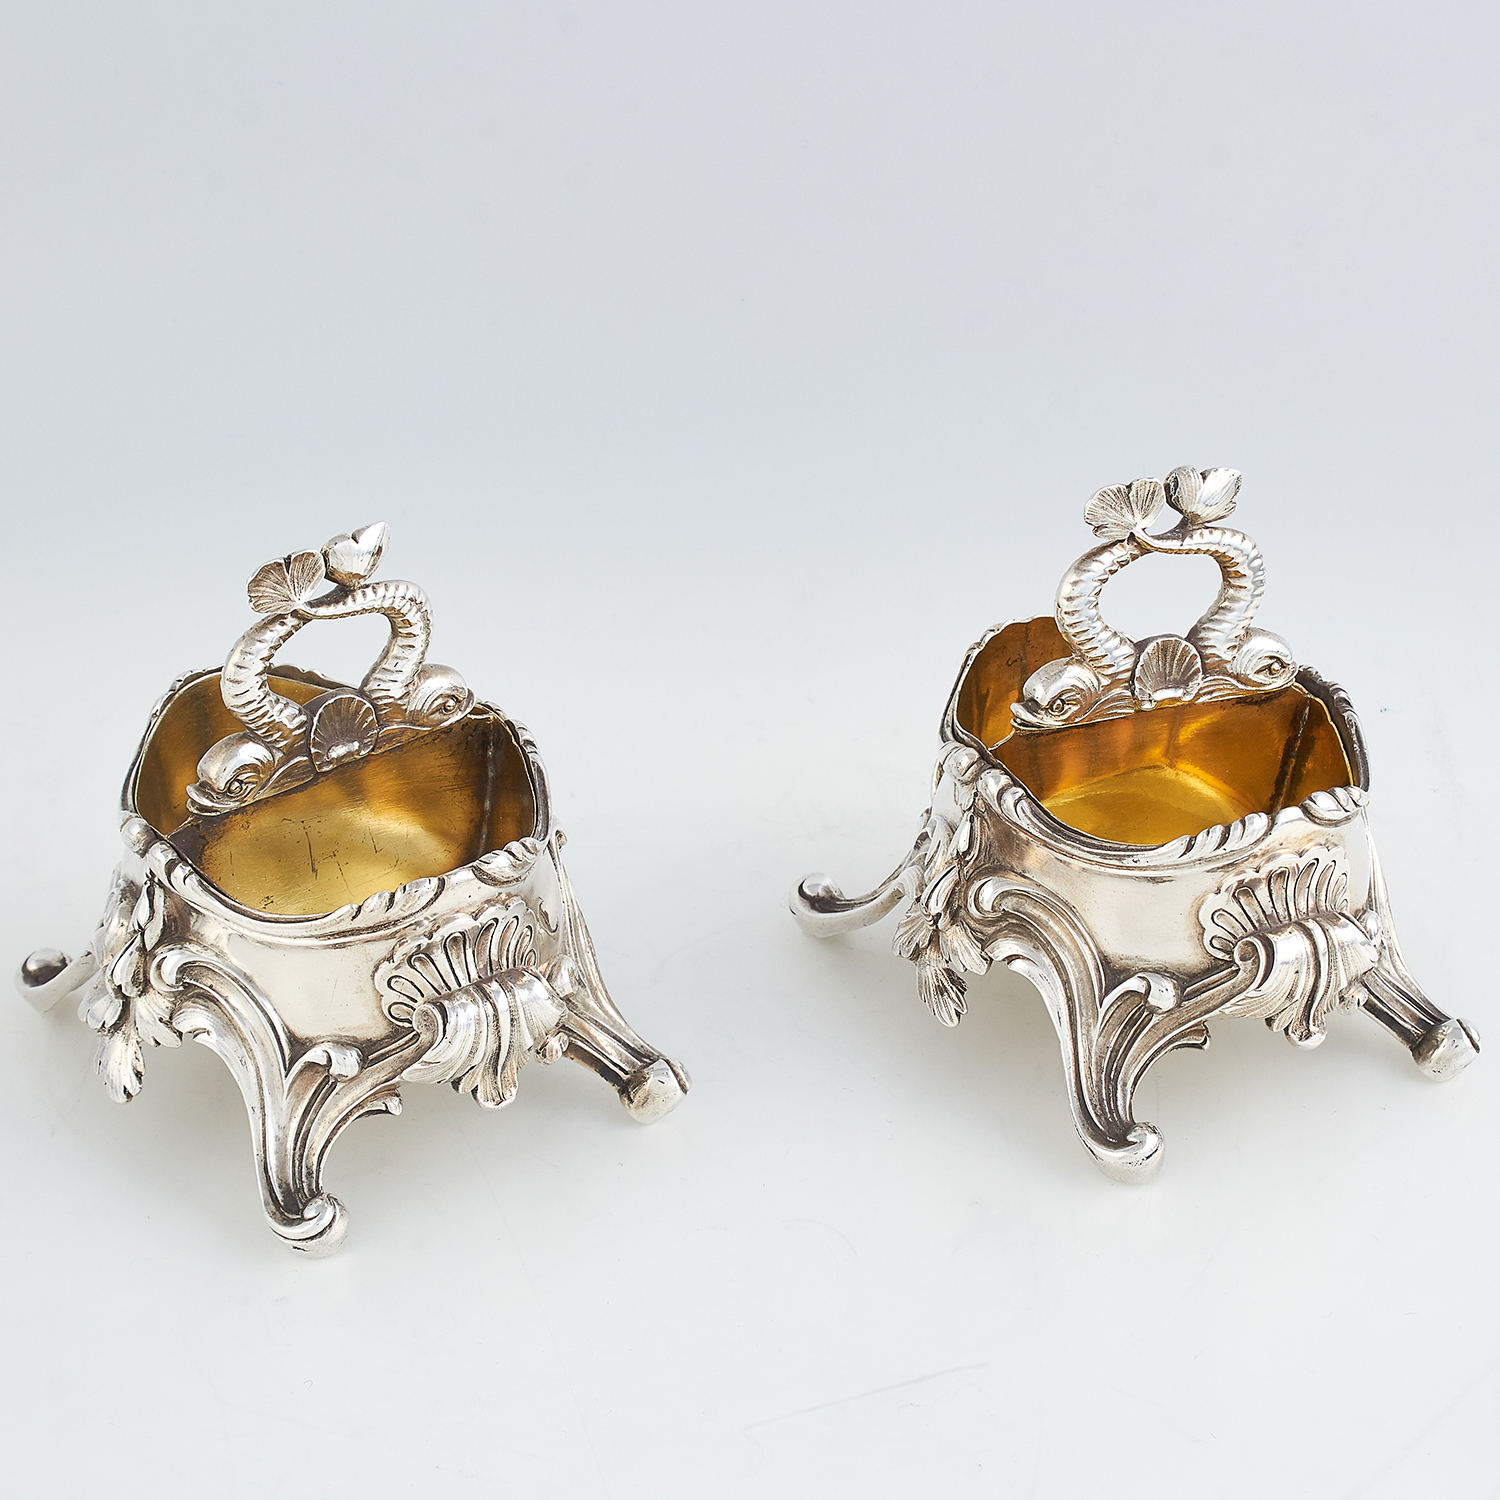 Los 48 - PAIR OF ANTIQUE FRENCH SILVER SALT CELLARS, F DUNARD CIRCA 1870 of oval form, each raised on four